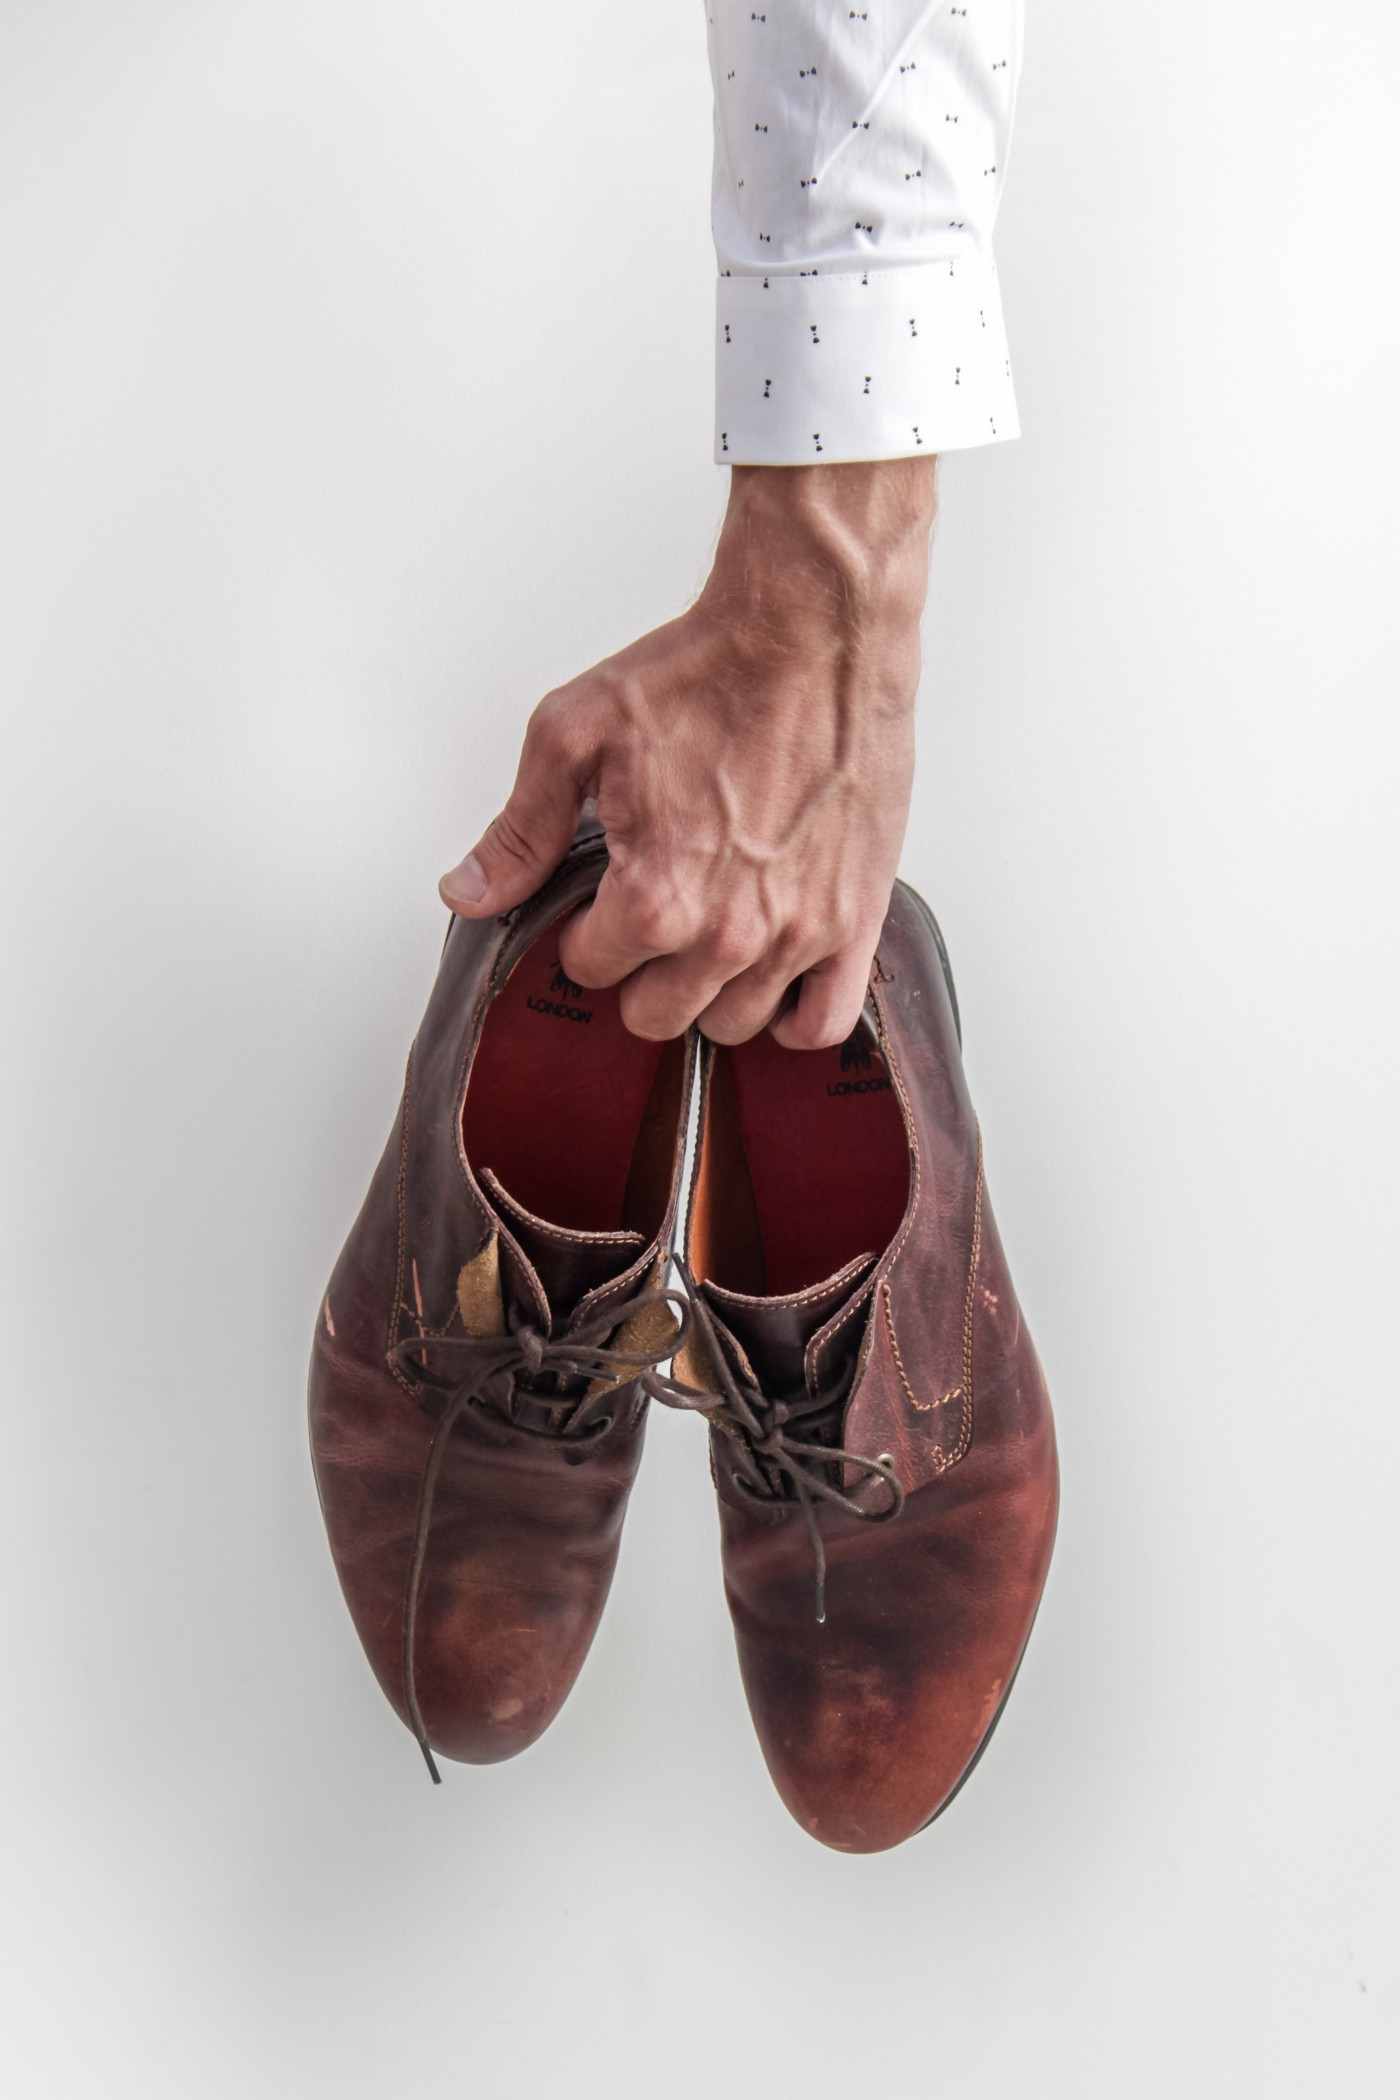 A hand holding a pair of brown shoes